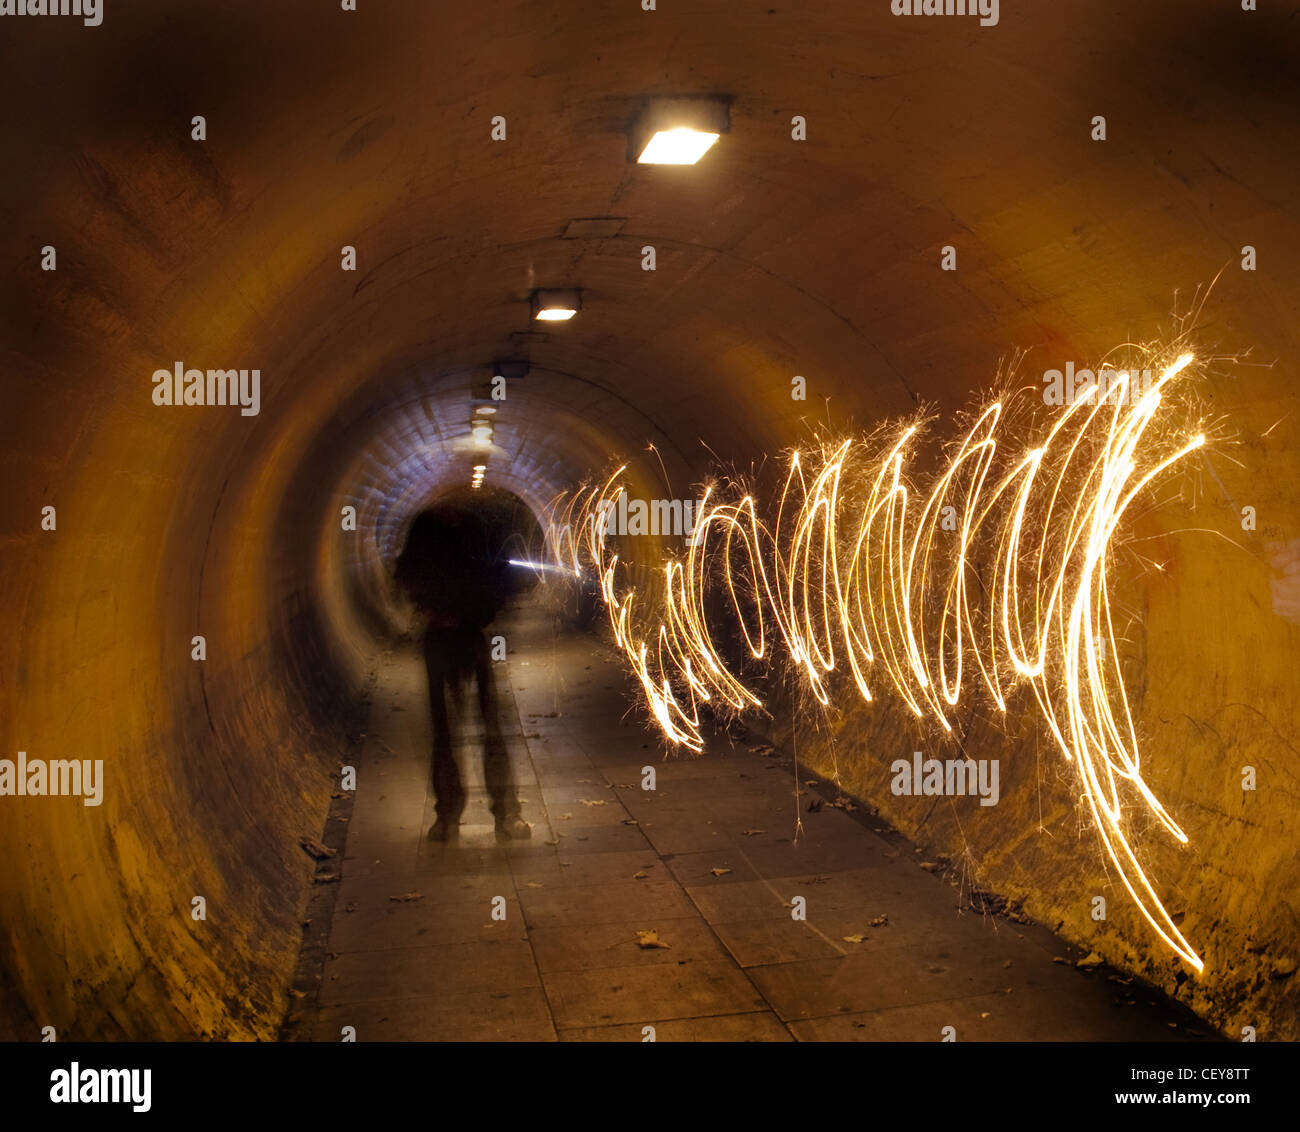 A man in a tunnel at night tunnelvision vision creating a path of light Stock Photo